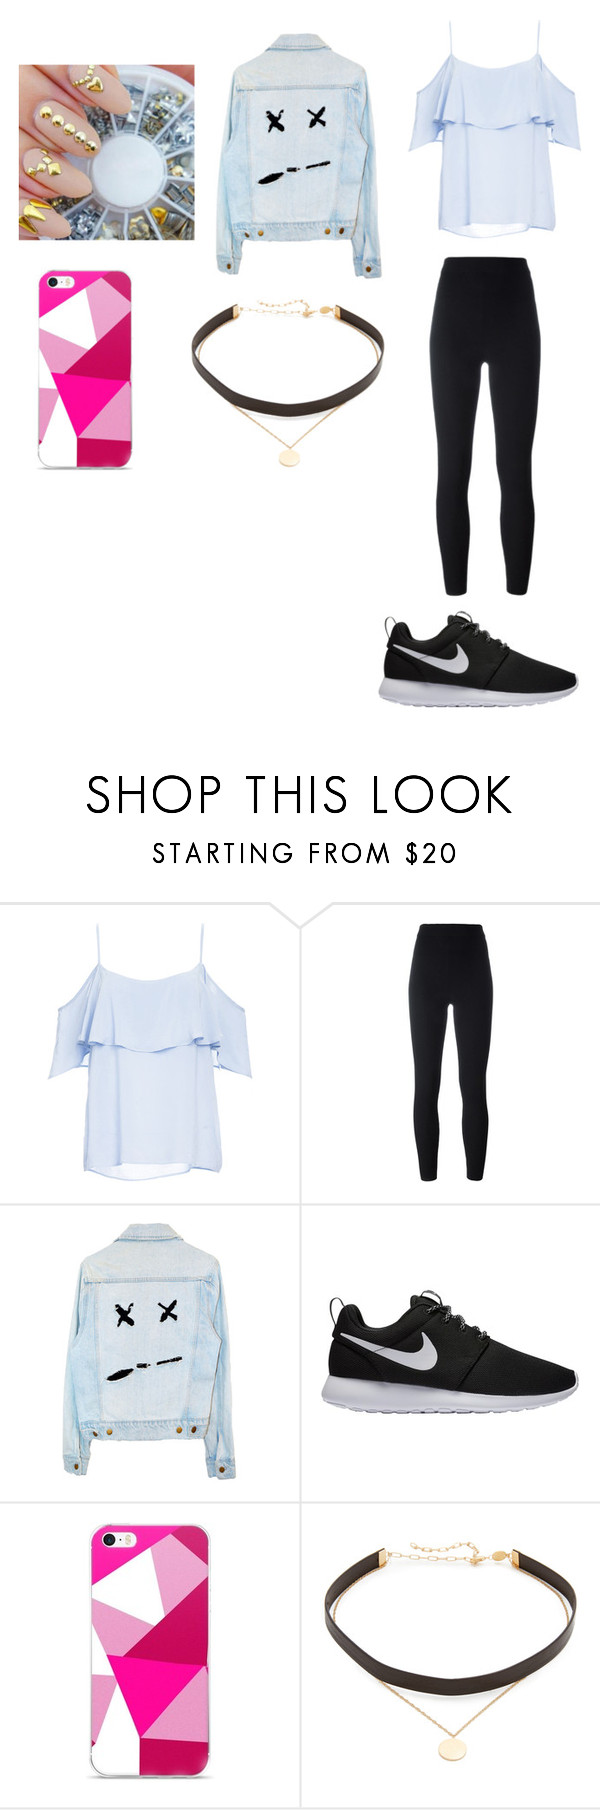 """Sem título #752"" by bruninhac ❤ liked on Polyvore featuring BB Dakota, Yeezy by Kanye West, NIKE and Jennifer Zeuner"